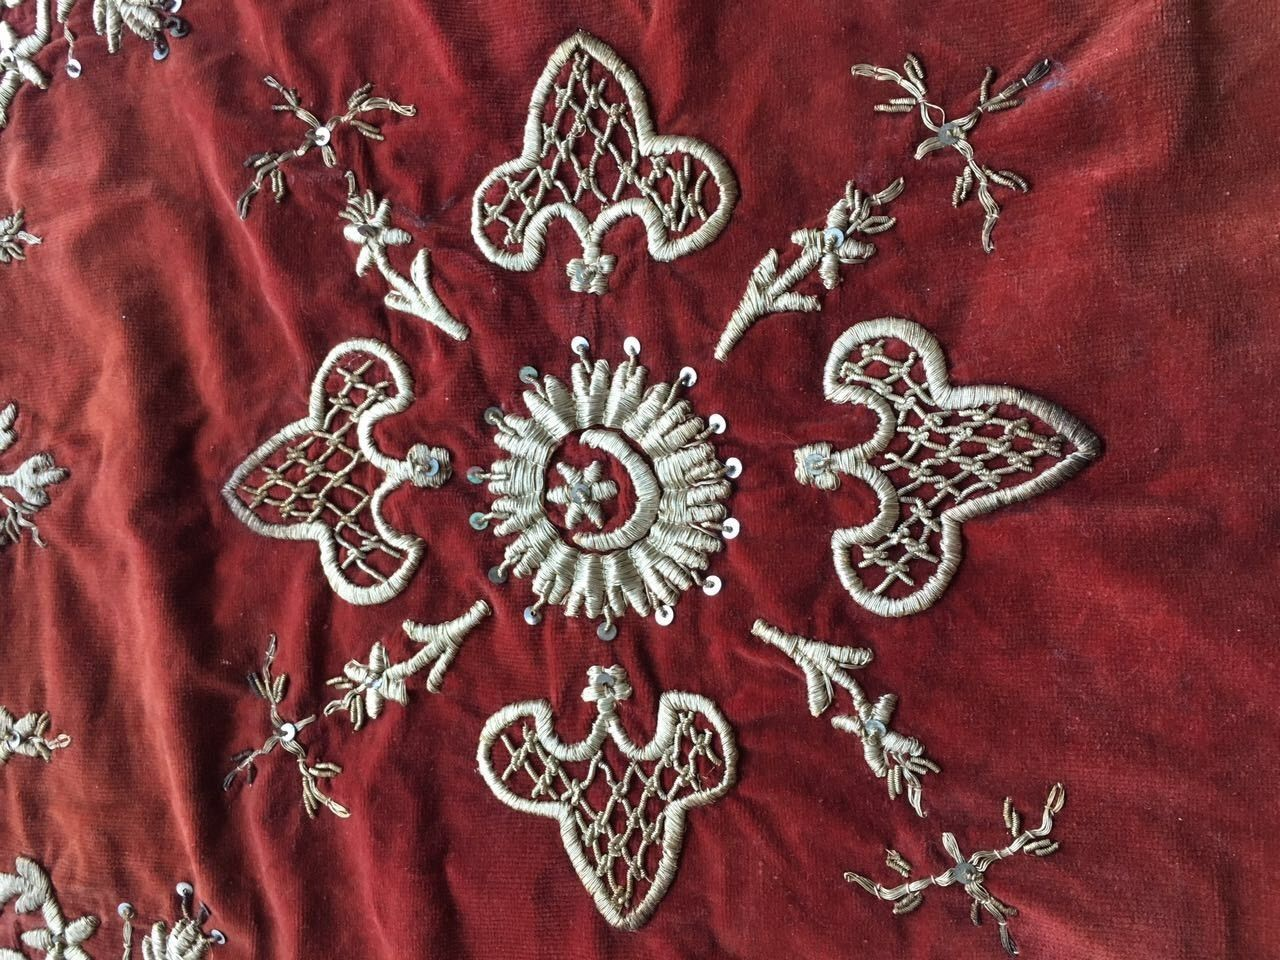 Antique Ottoman Turkish Silver Metallic Hand Embroidery Bohca 2 • $275.00